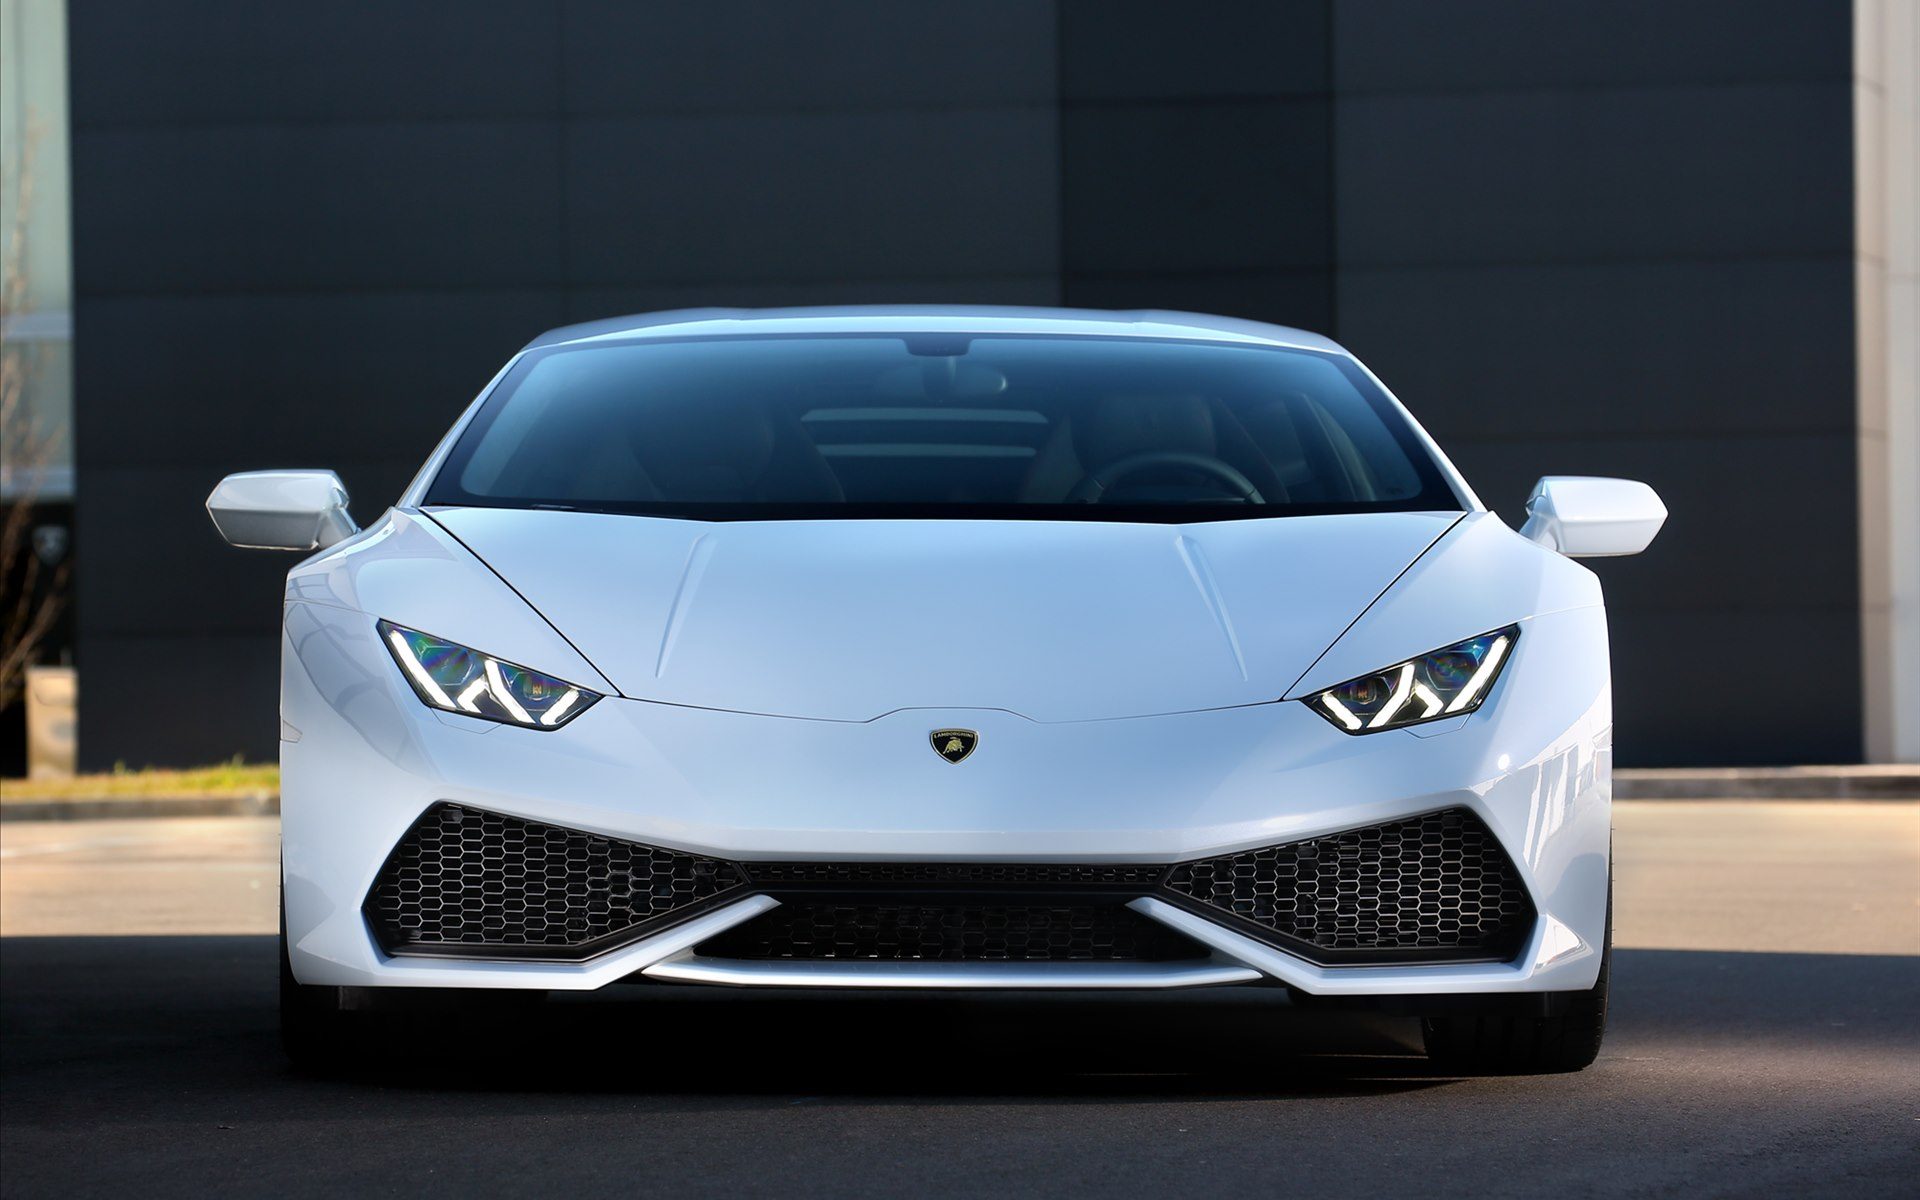 Lamborghini Huracan 2015 Wallpaper Photos